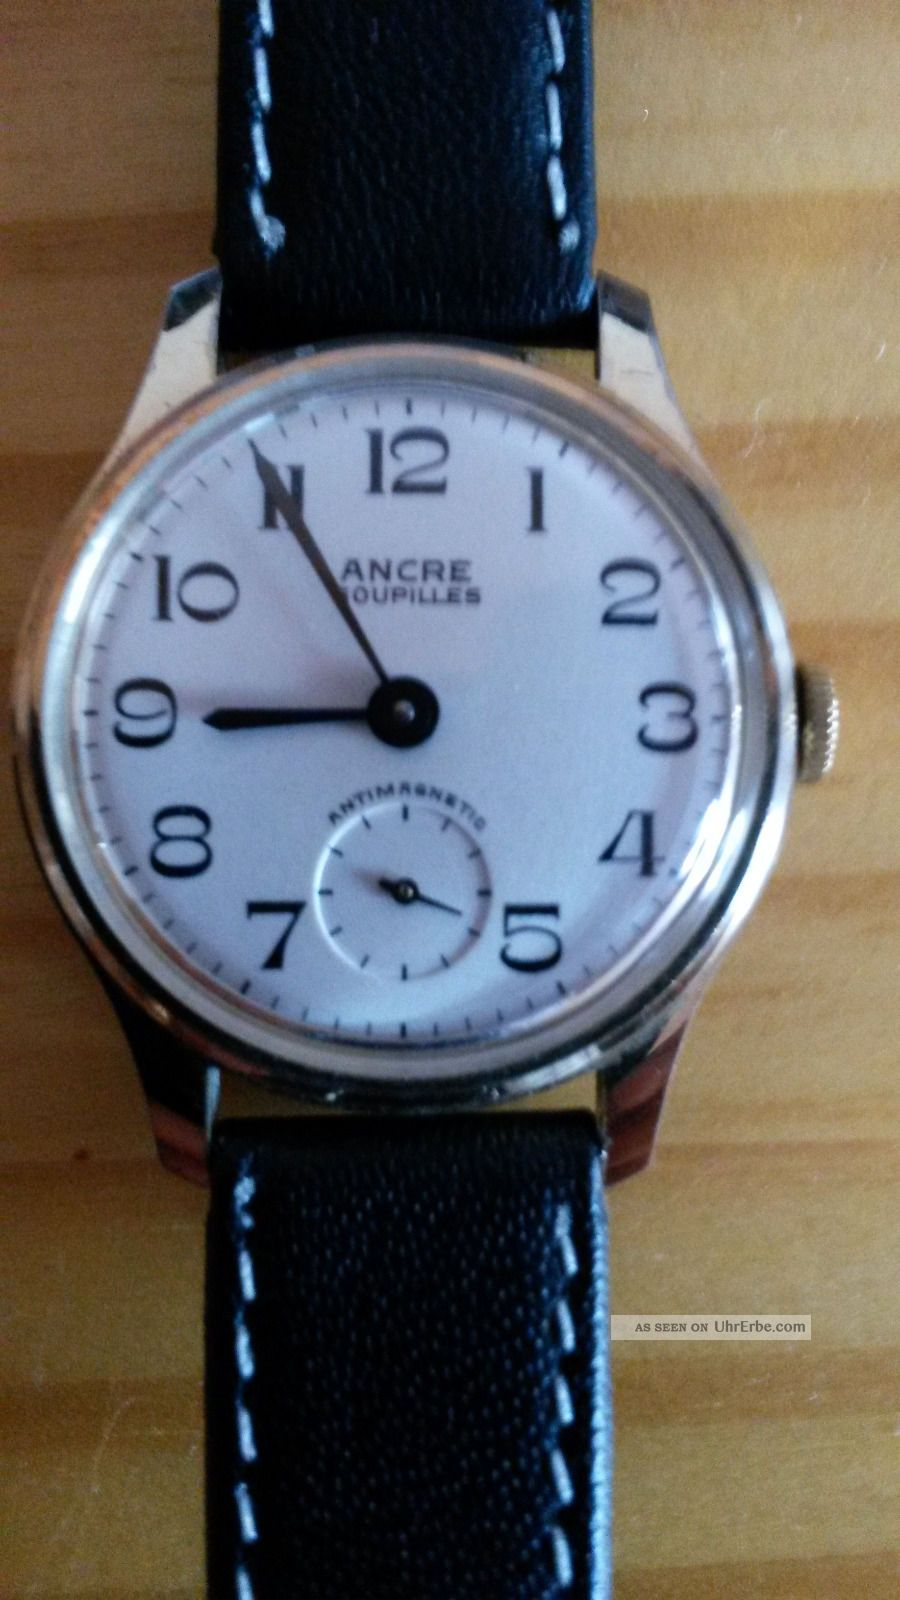 ancre goupilles armbanduhr vintage wristwatch. Black Bedroom Furniture Sets. Home Design Ideas